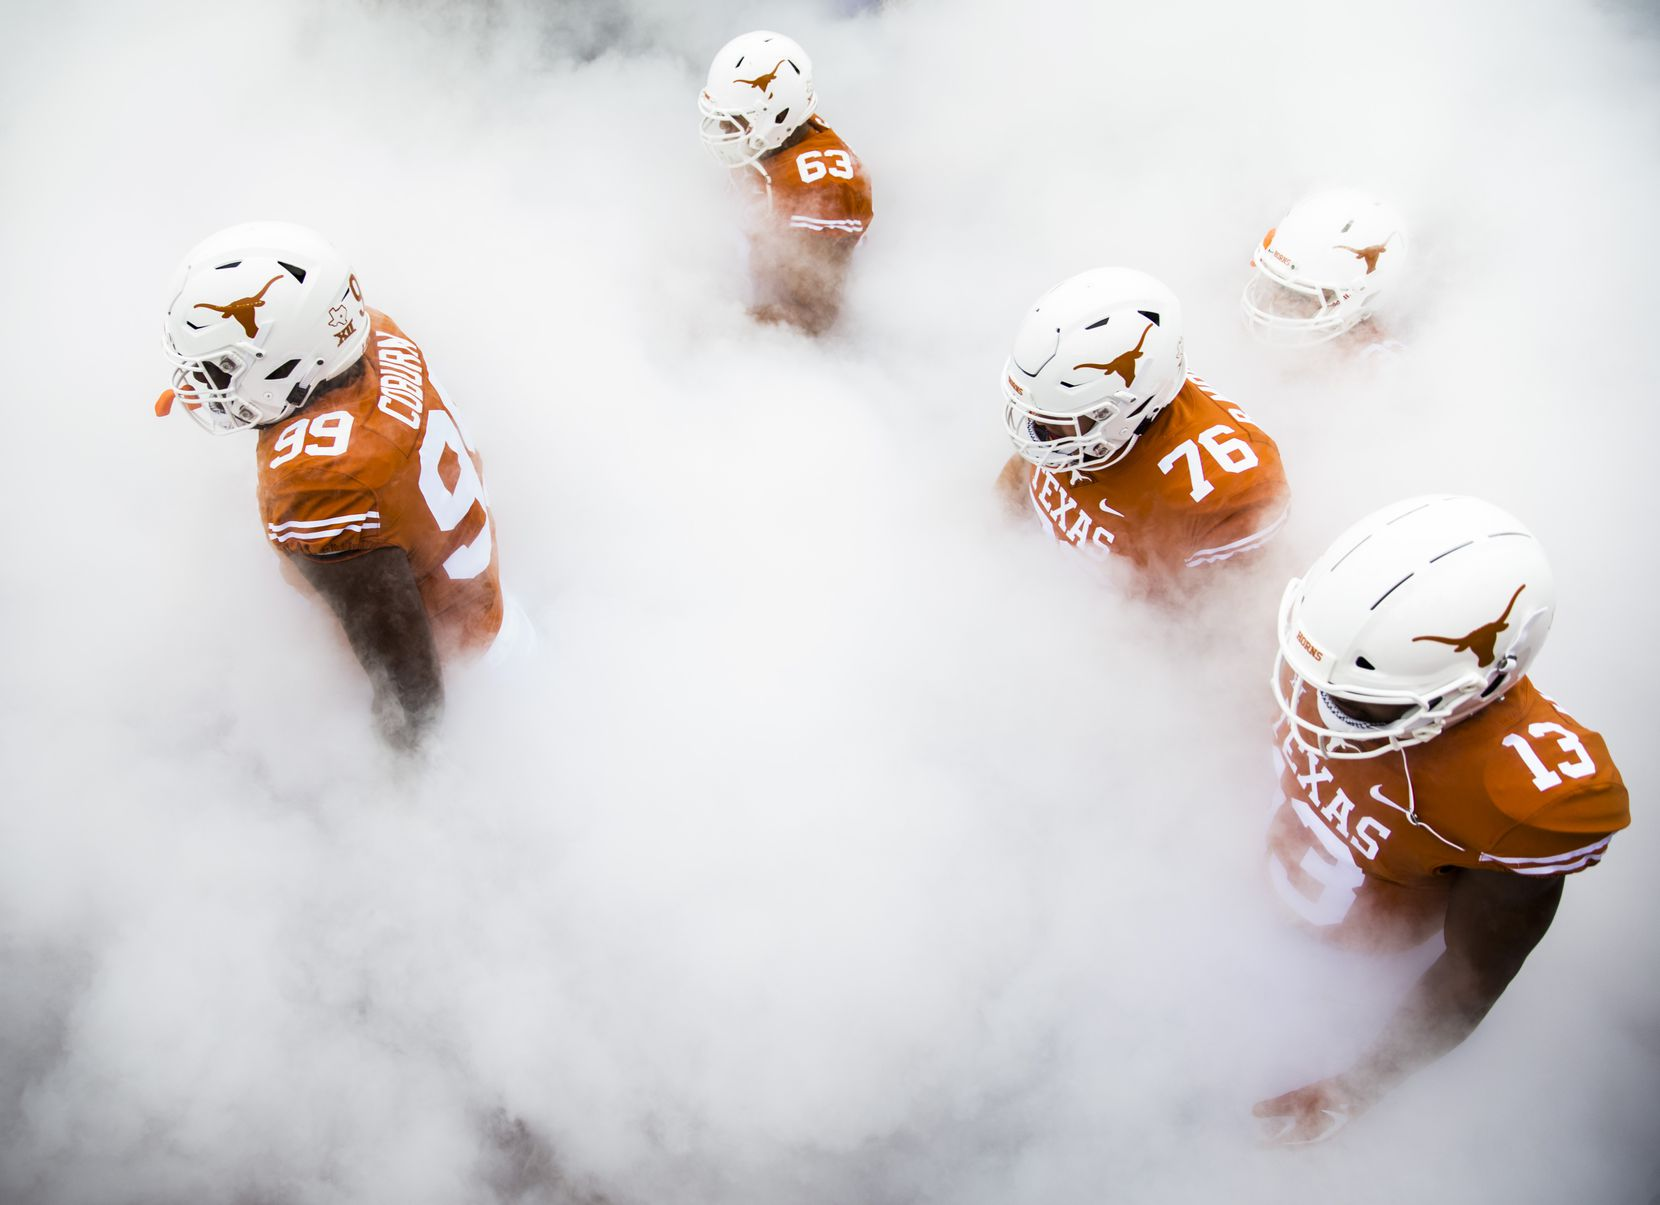 Members of the Texas Longhorns football team walk through smoke to enter the stadium before a game between TCU and the University of Texas on September 22, 2018 at Darrell K Royal - Texas Memorial Stadium in Austin.